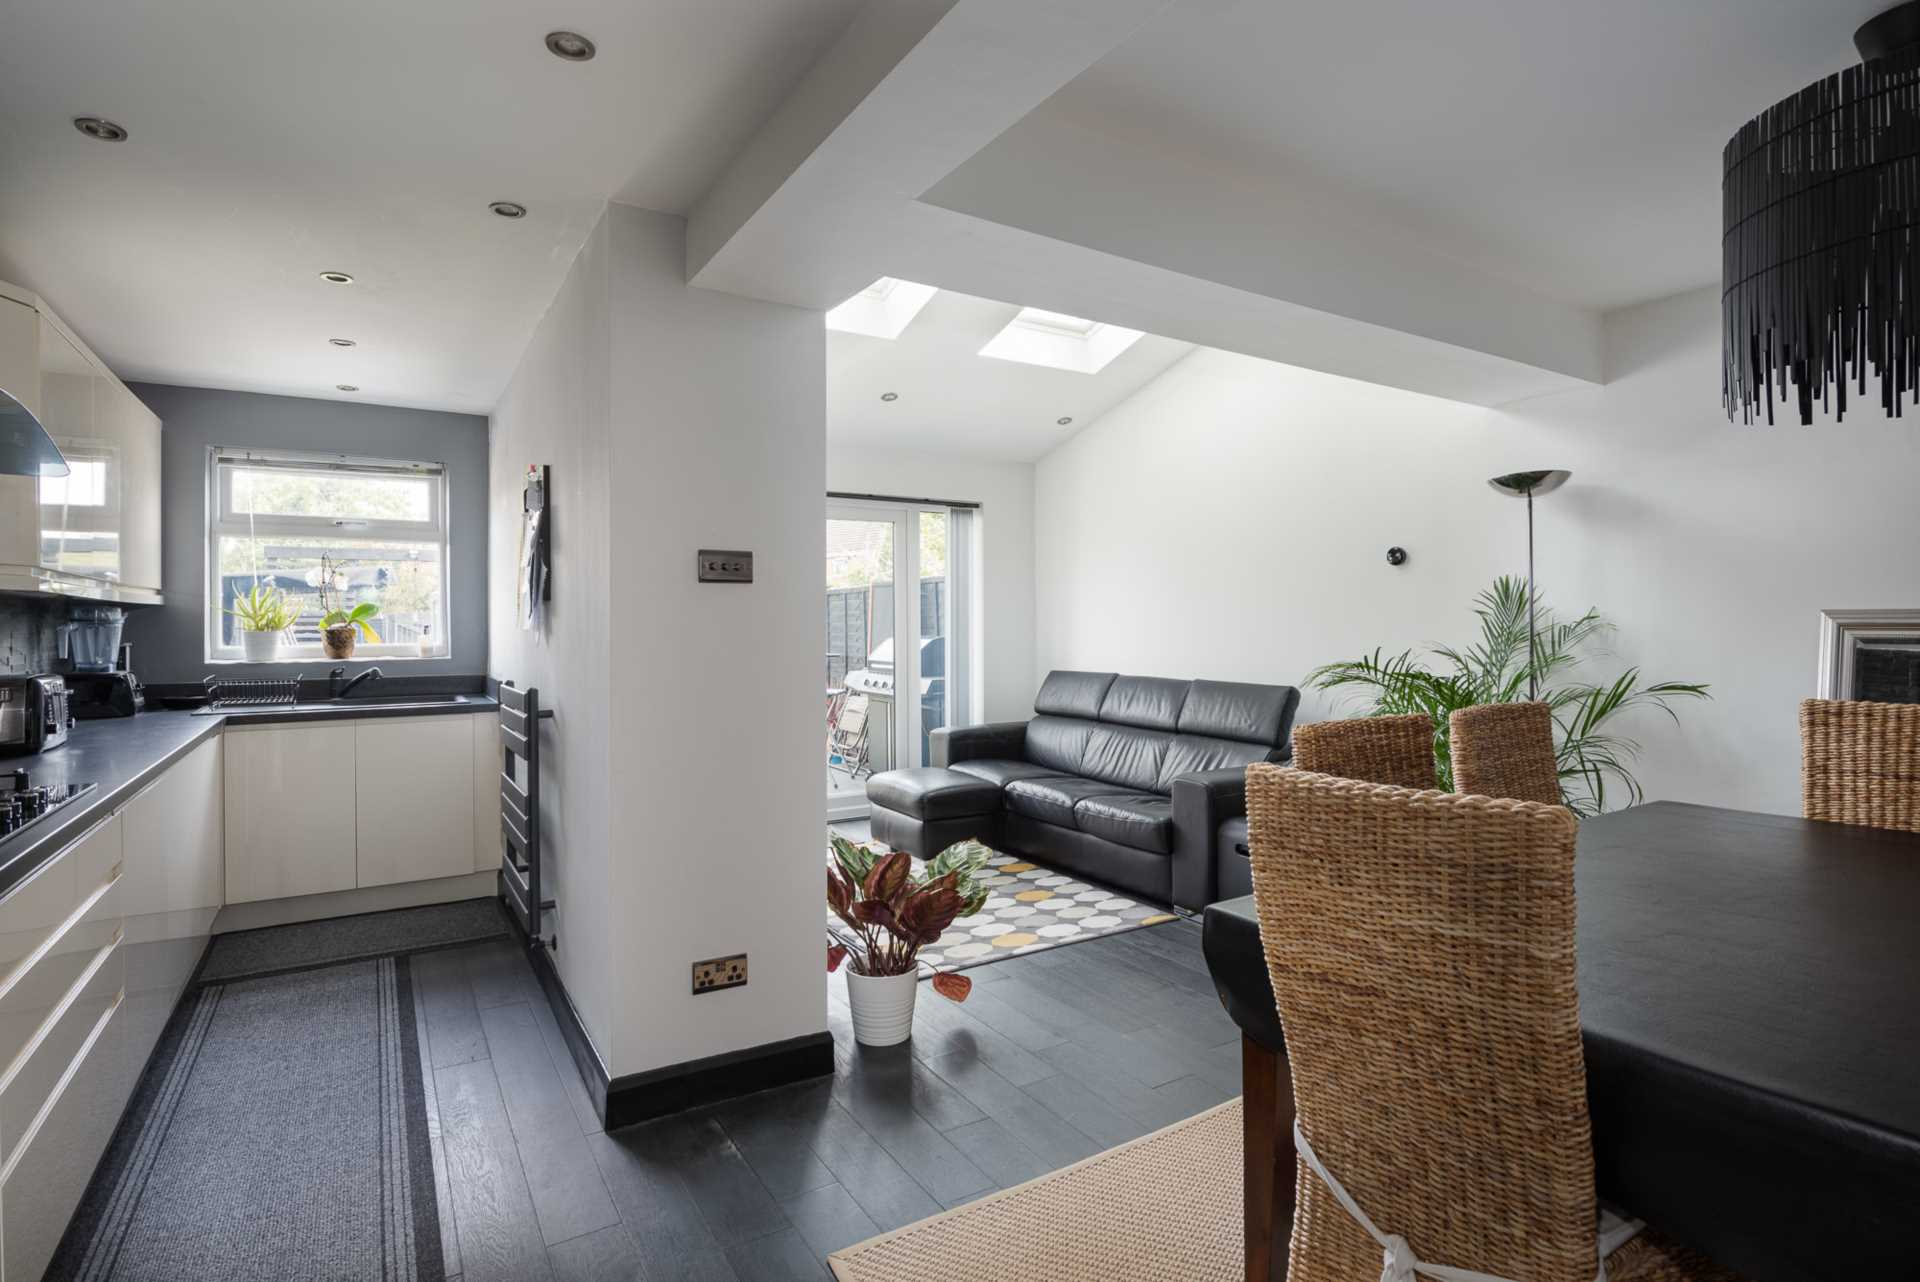 Anchorway Road, Coventry, Image 3